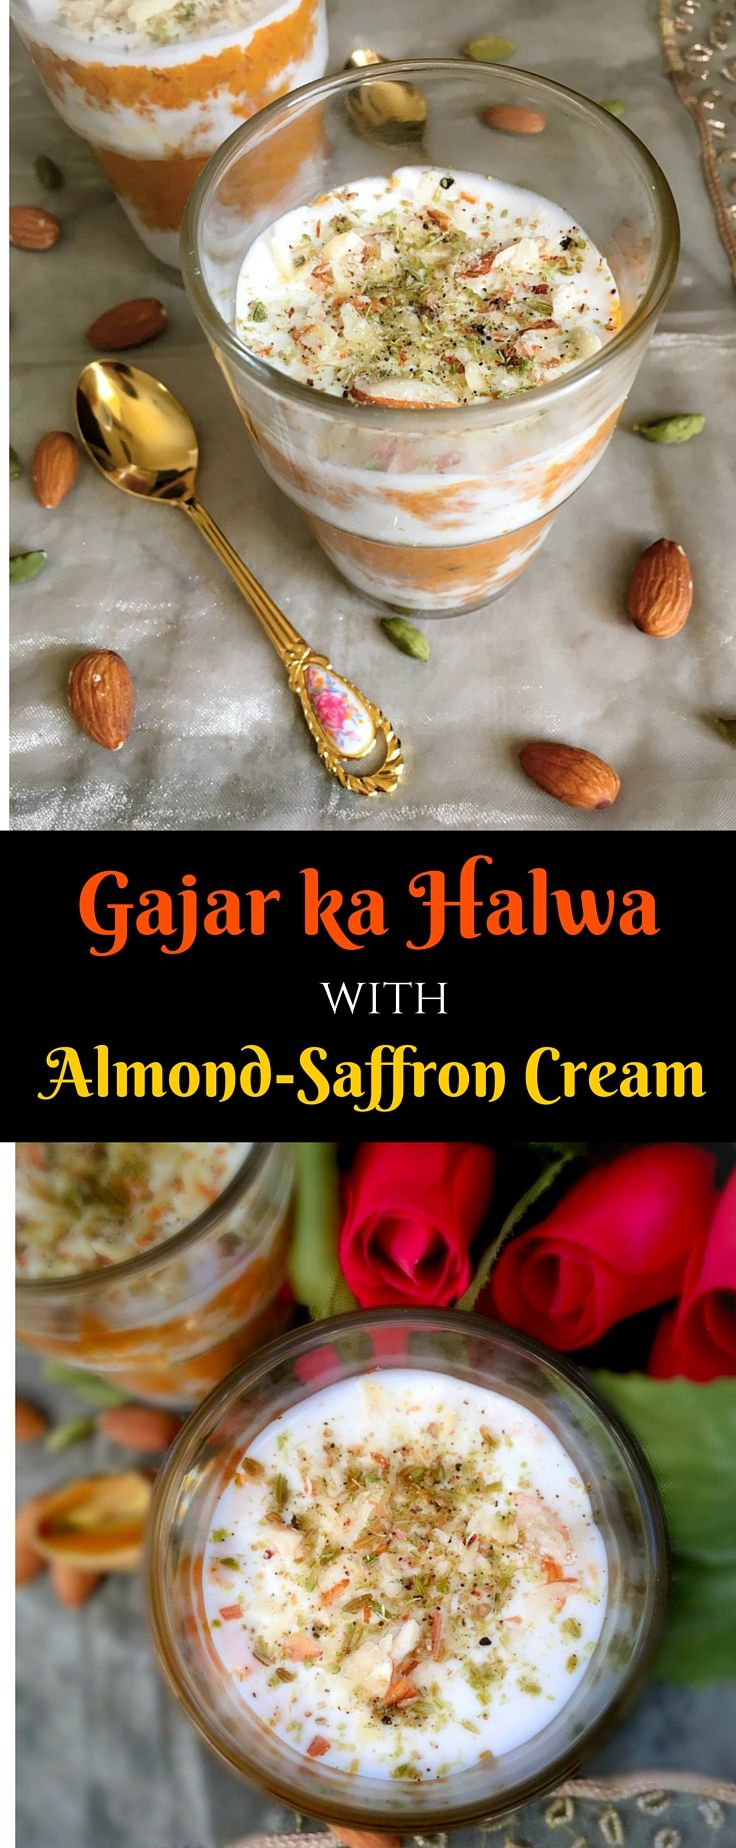 Gajar-ka-Halwa-with-Almond-Saffron-Cream (Layered Indian Carrot Pudding)…